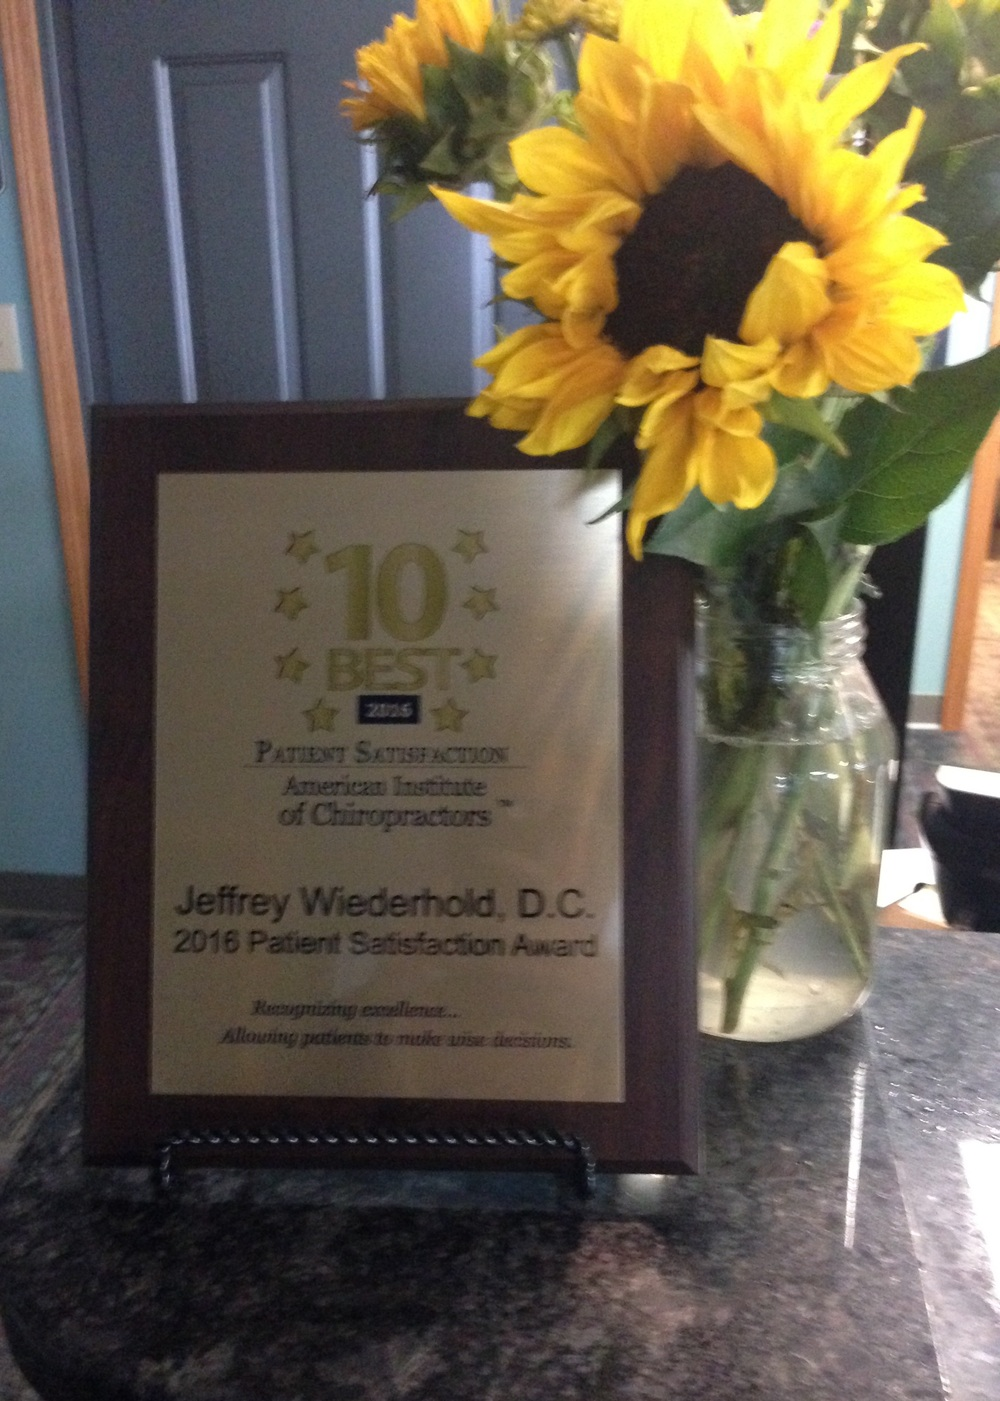 Top 10 Best Chiropractor in the state of Michigan awarded to Jeffrey Wiederhold DC